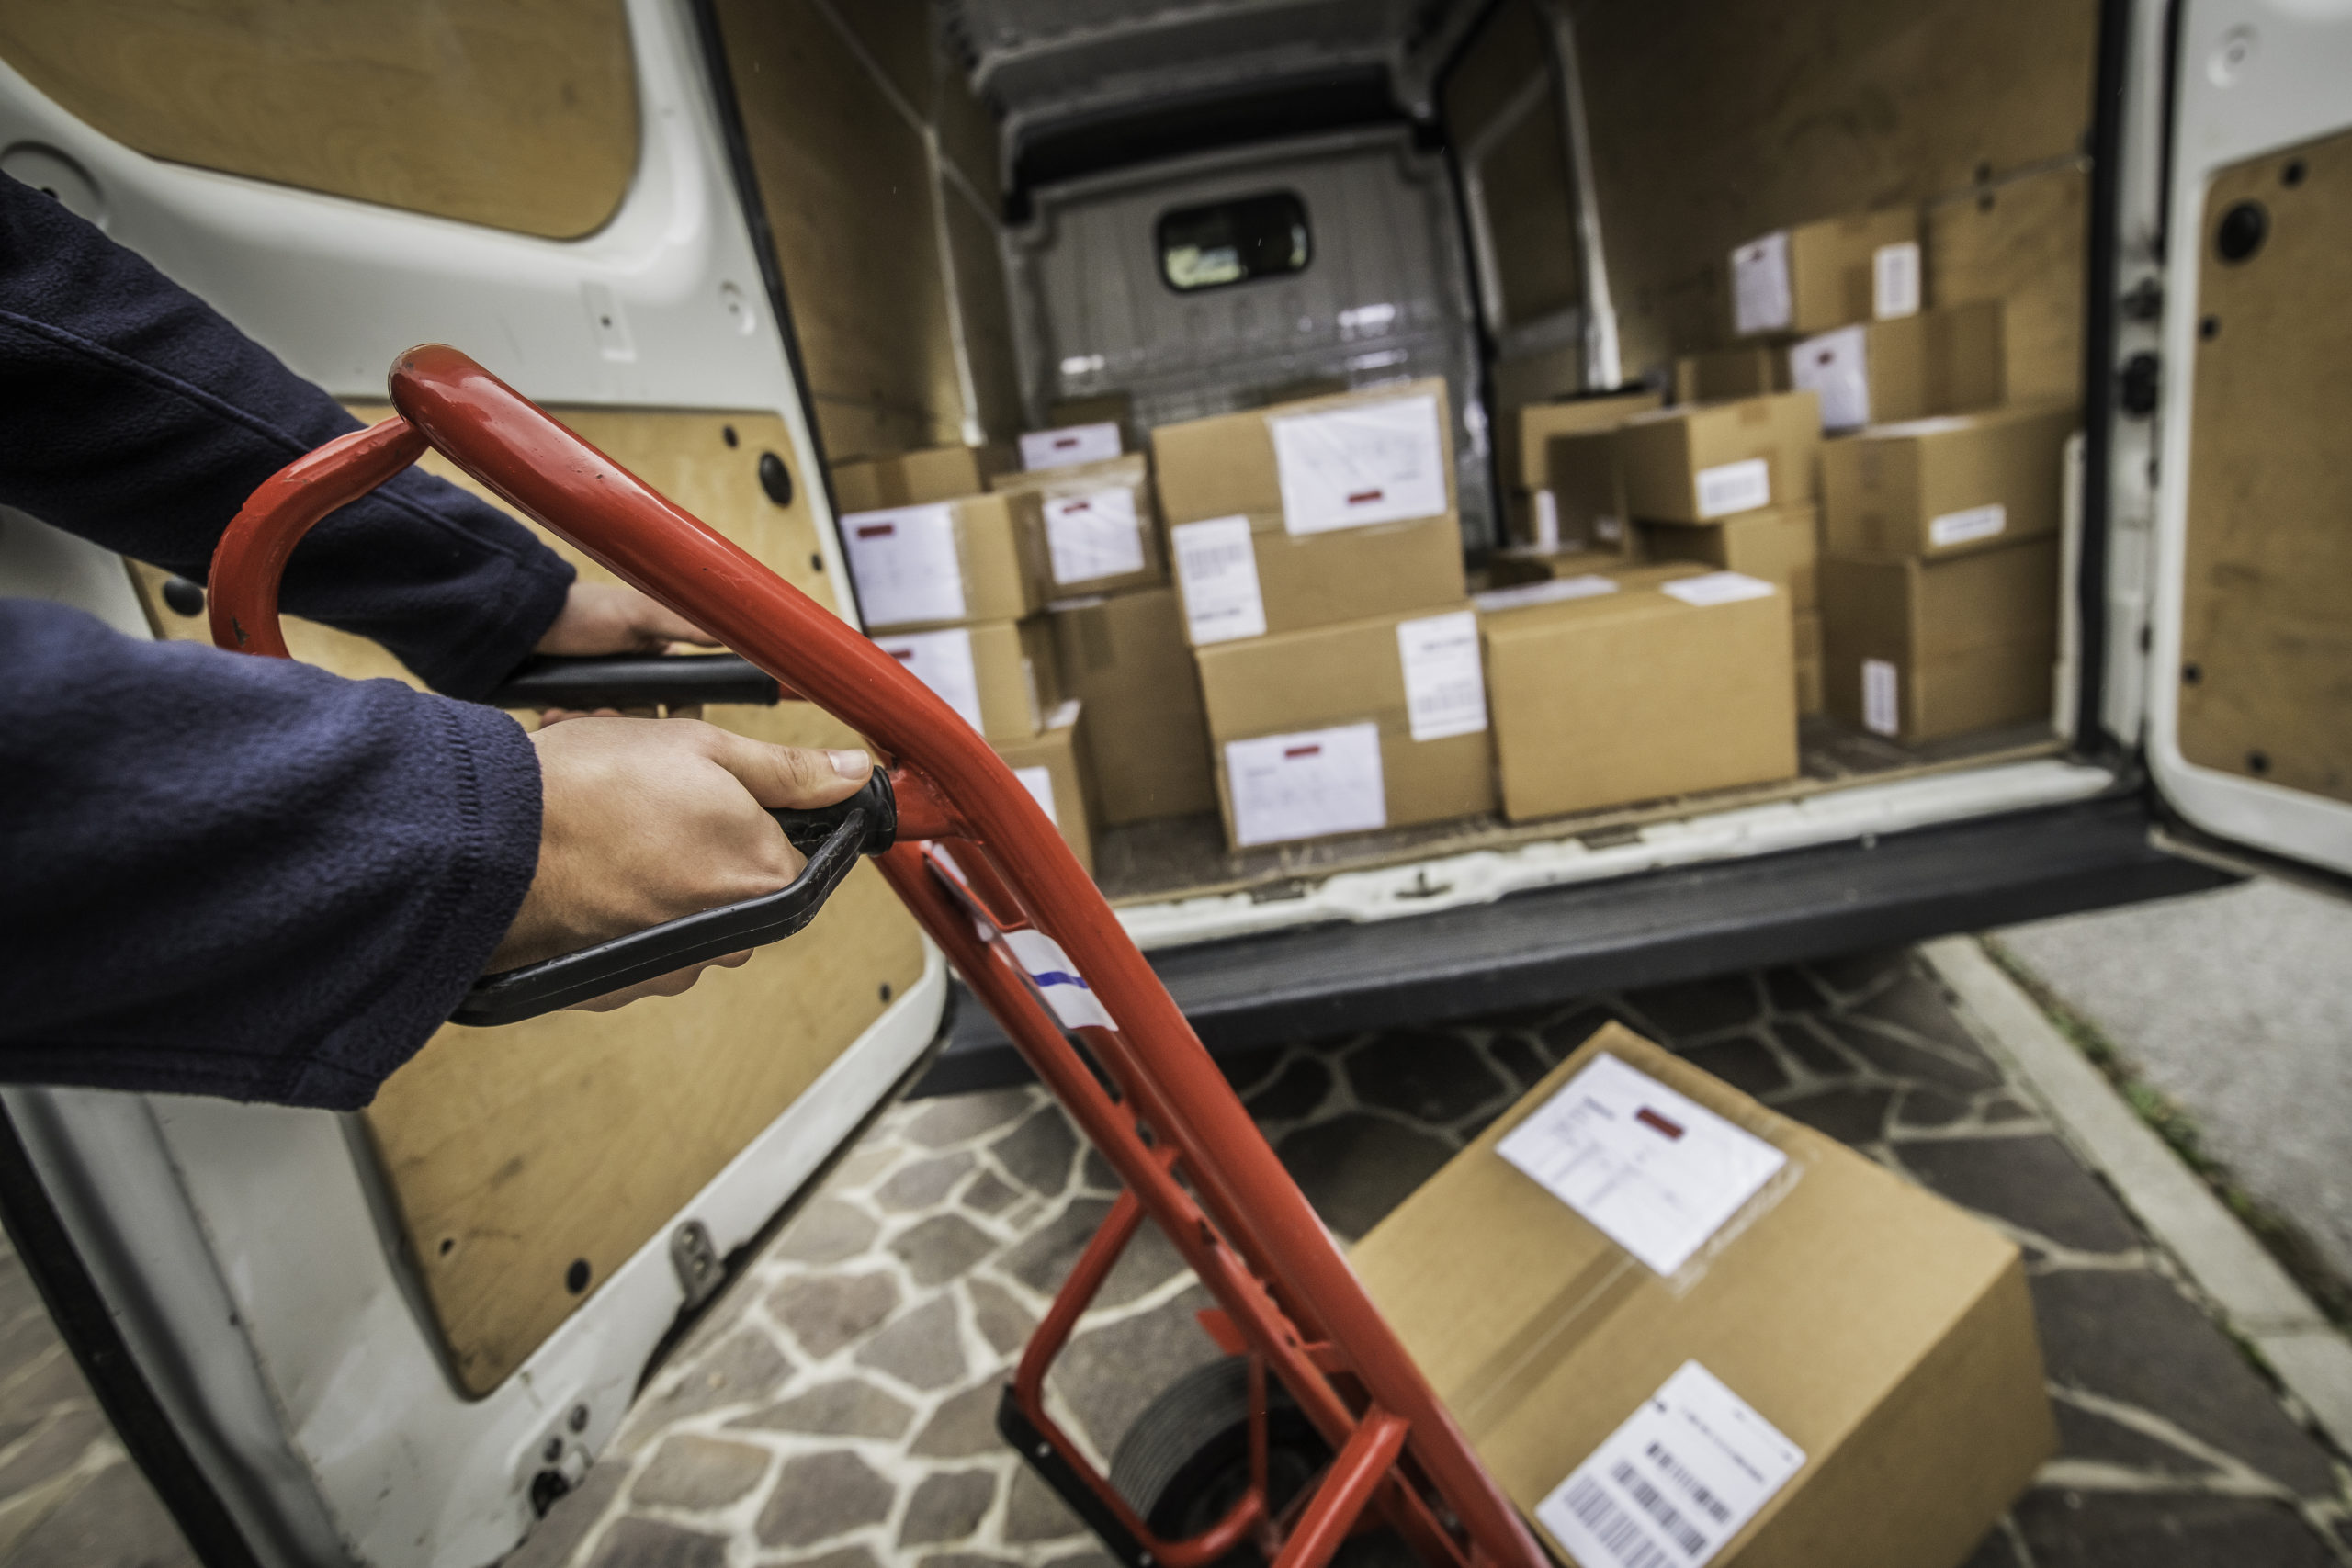 Loading a courier van